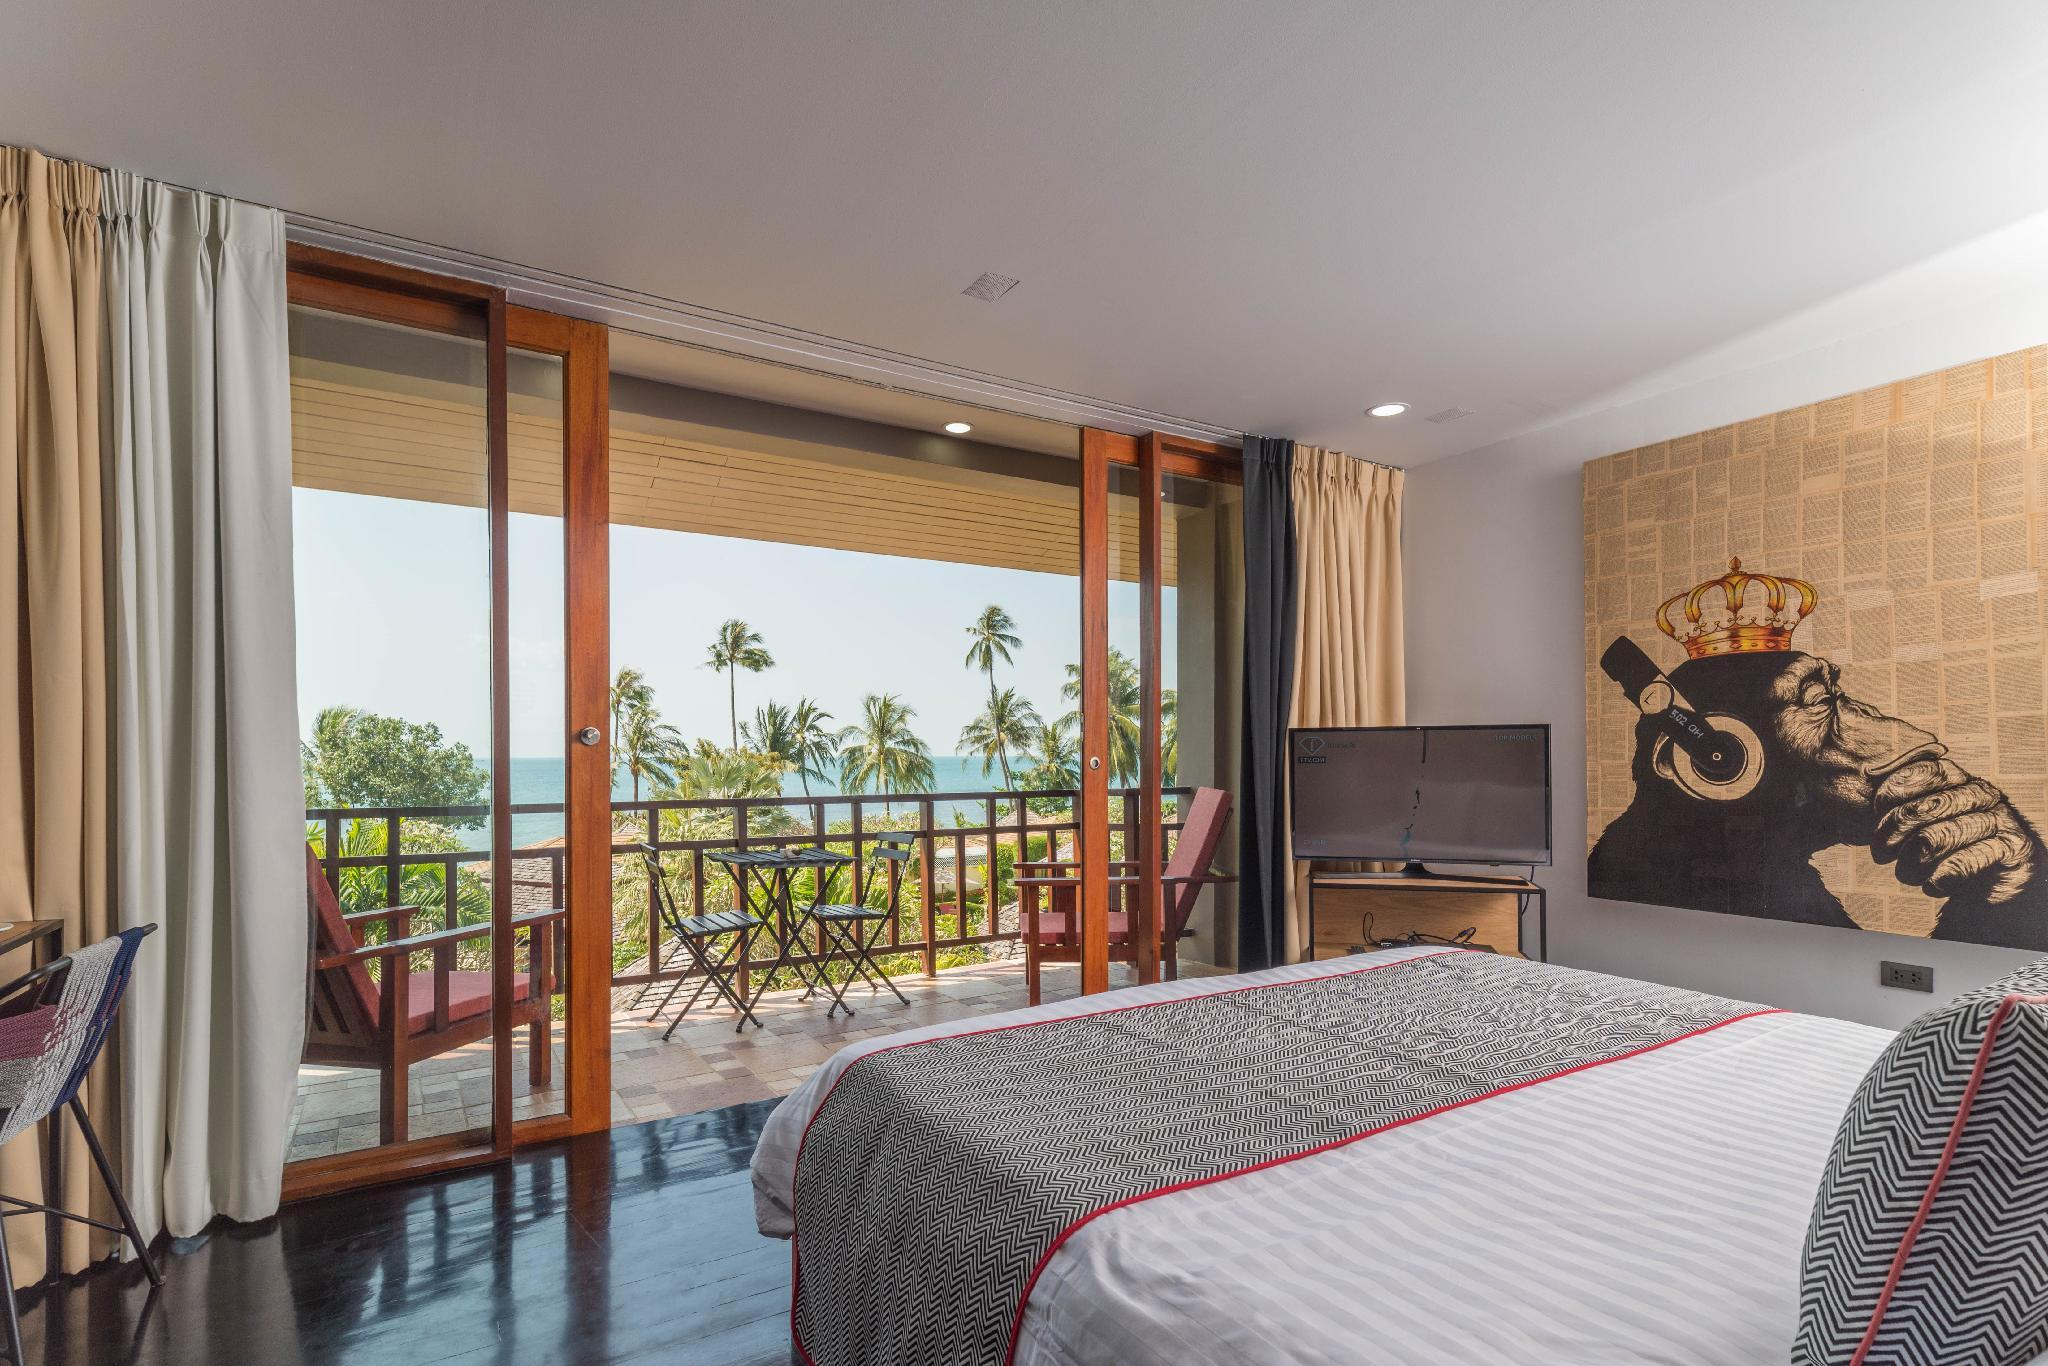 Kamar Sunset dengan Pemandangan Laut (Sunset Sea View Room)